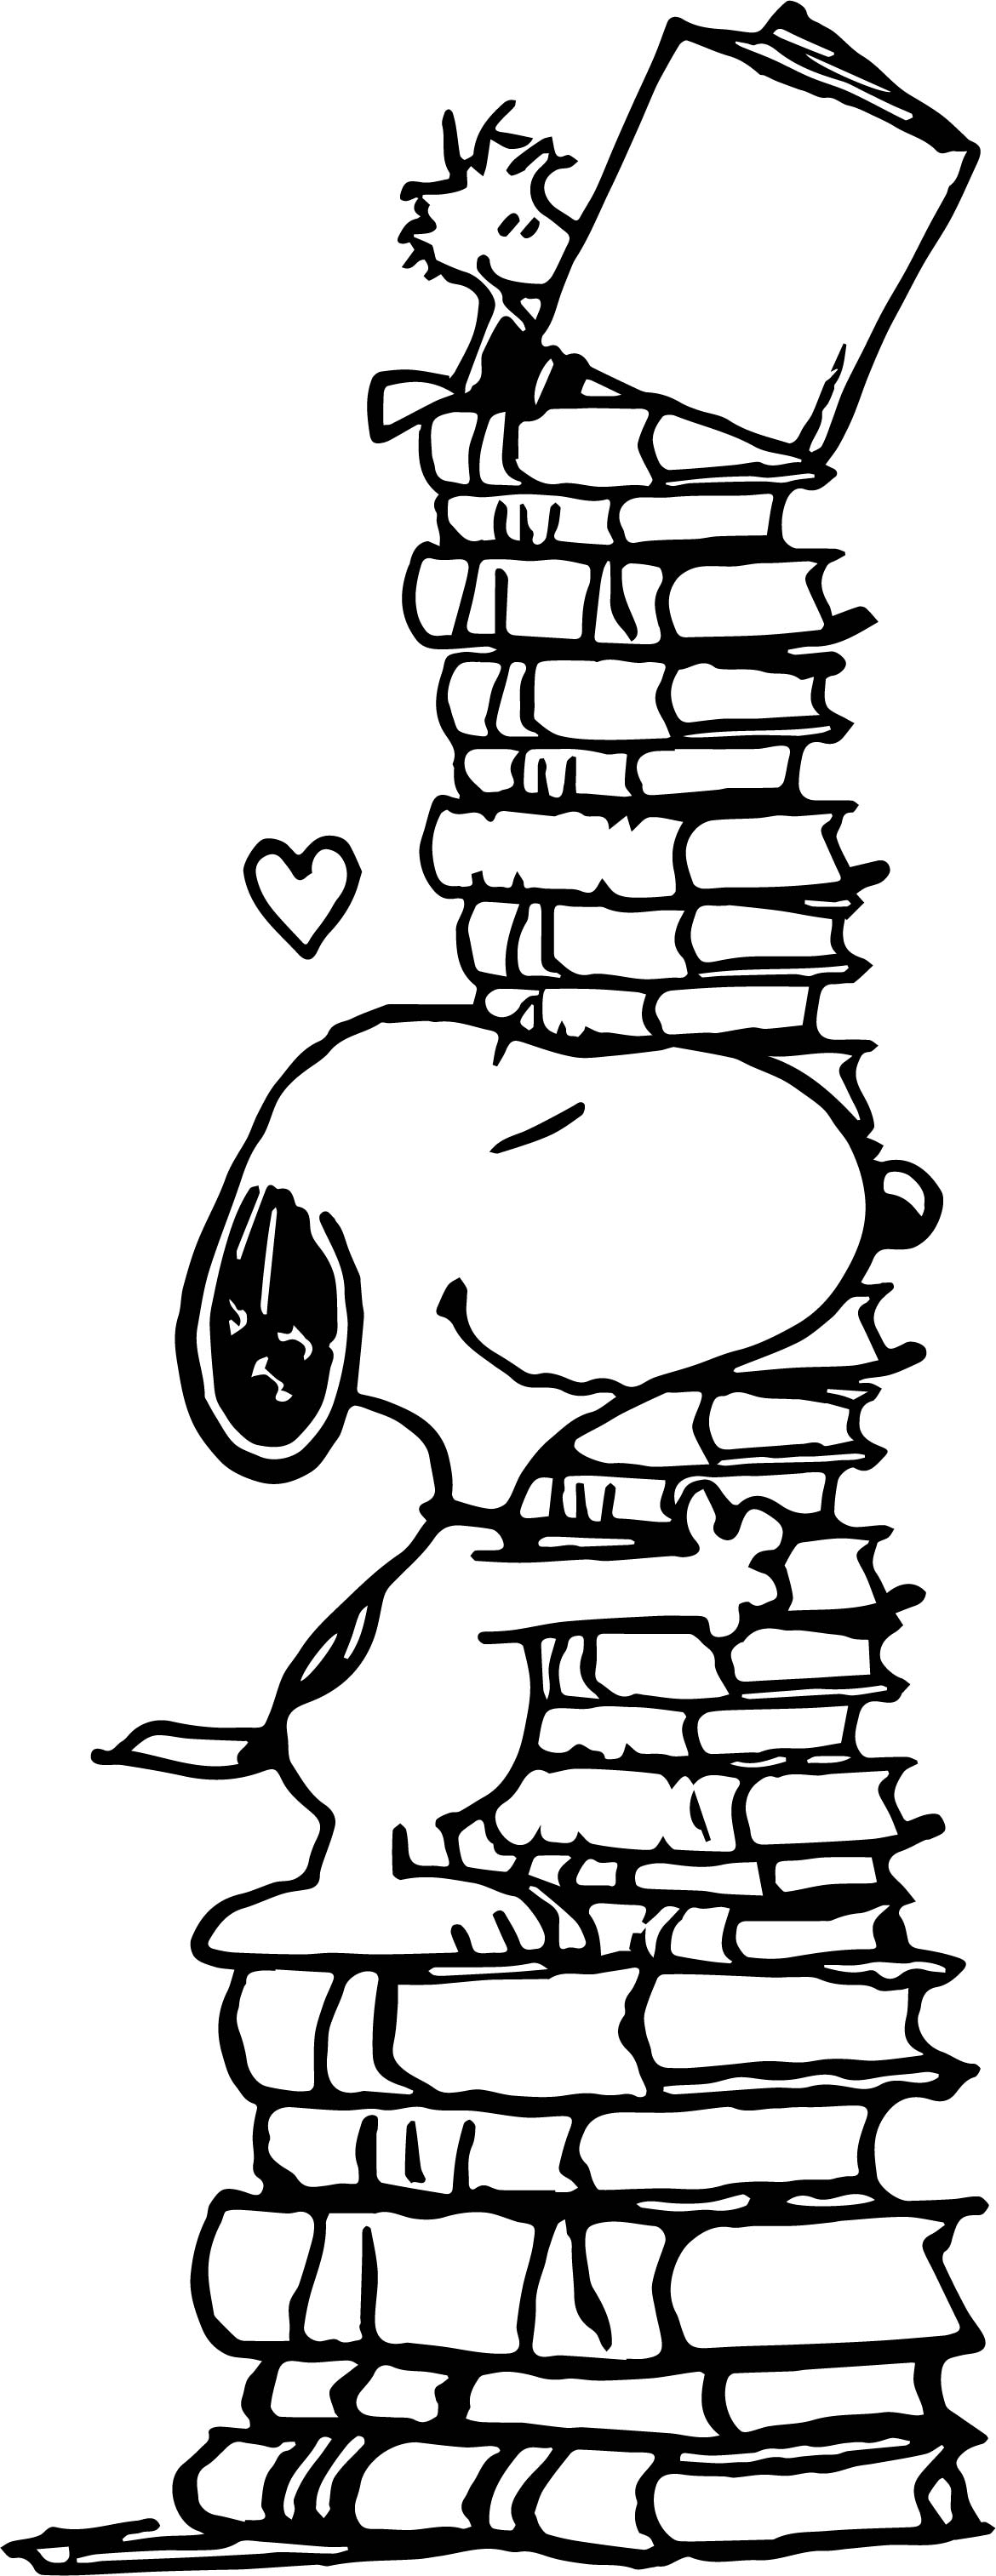 Love books snoopy coloring page for Snoopy coloring page